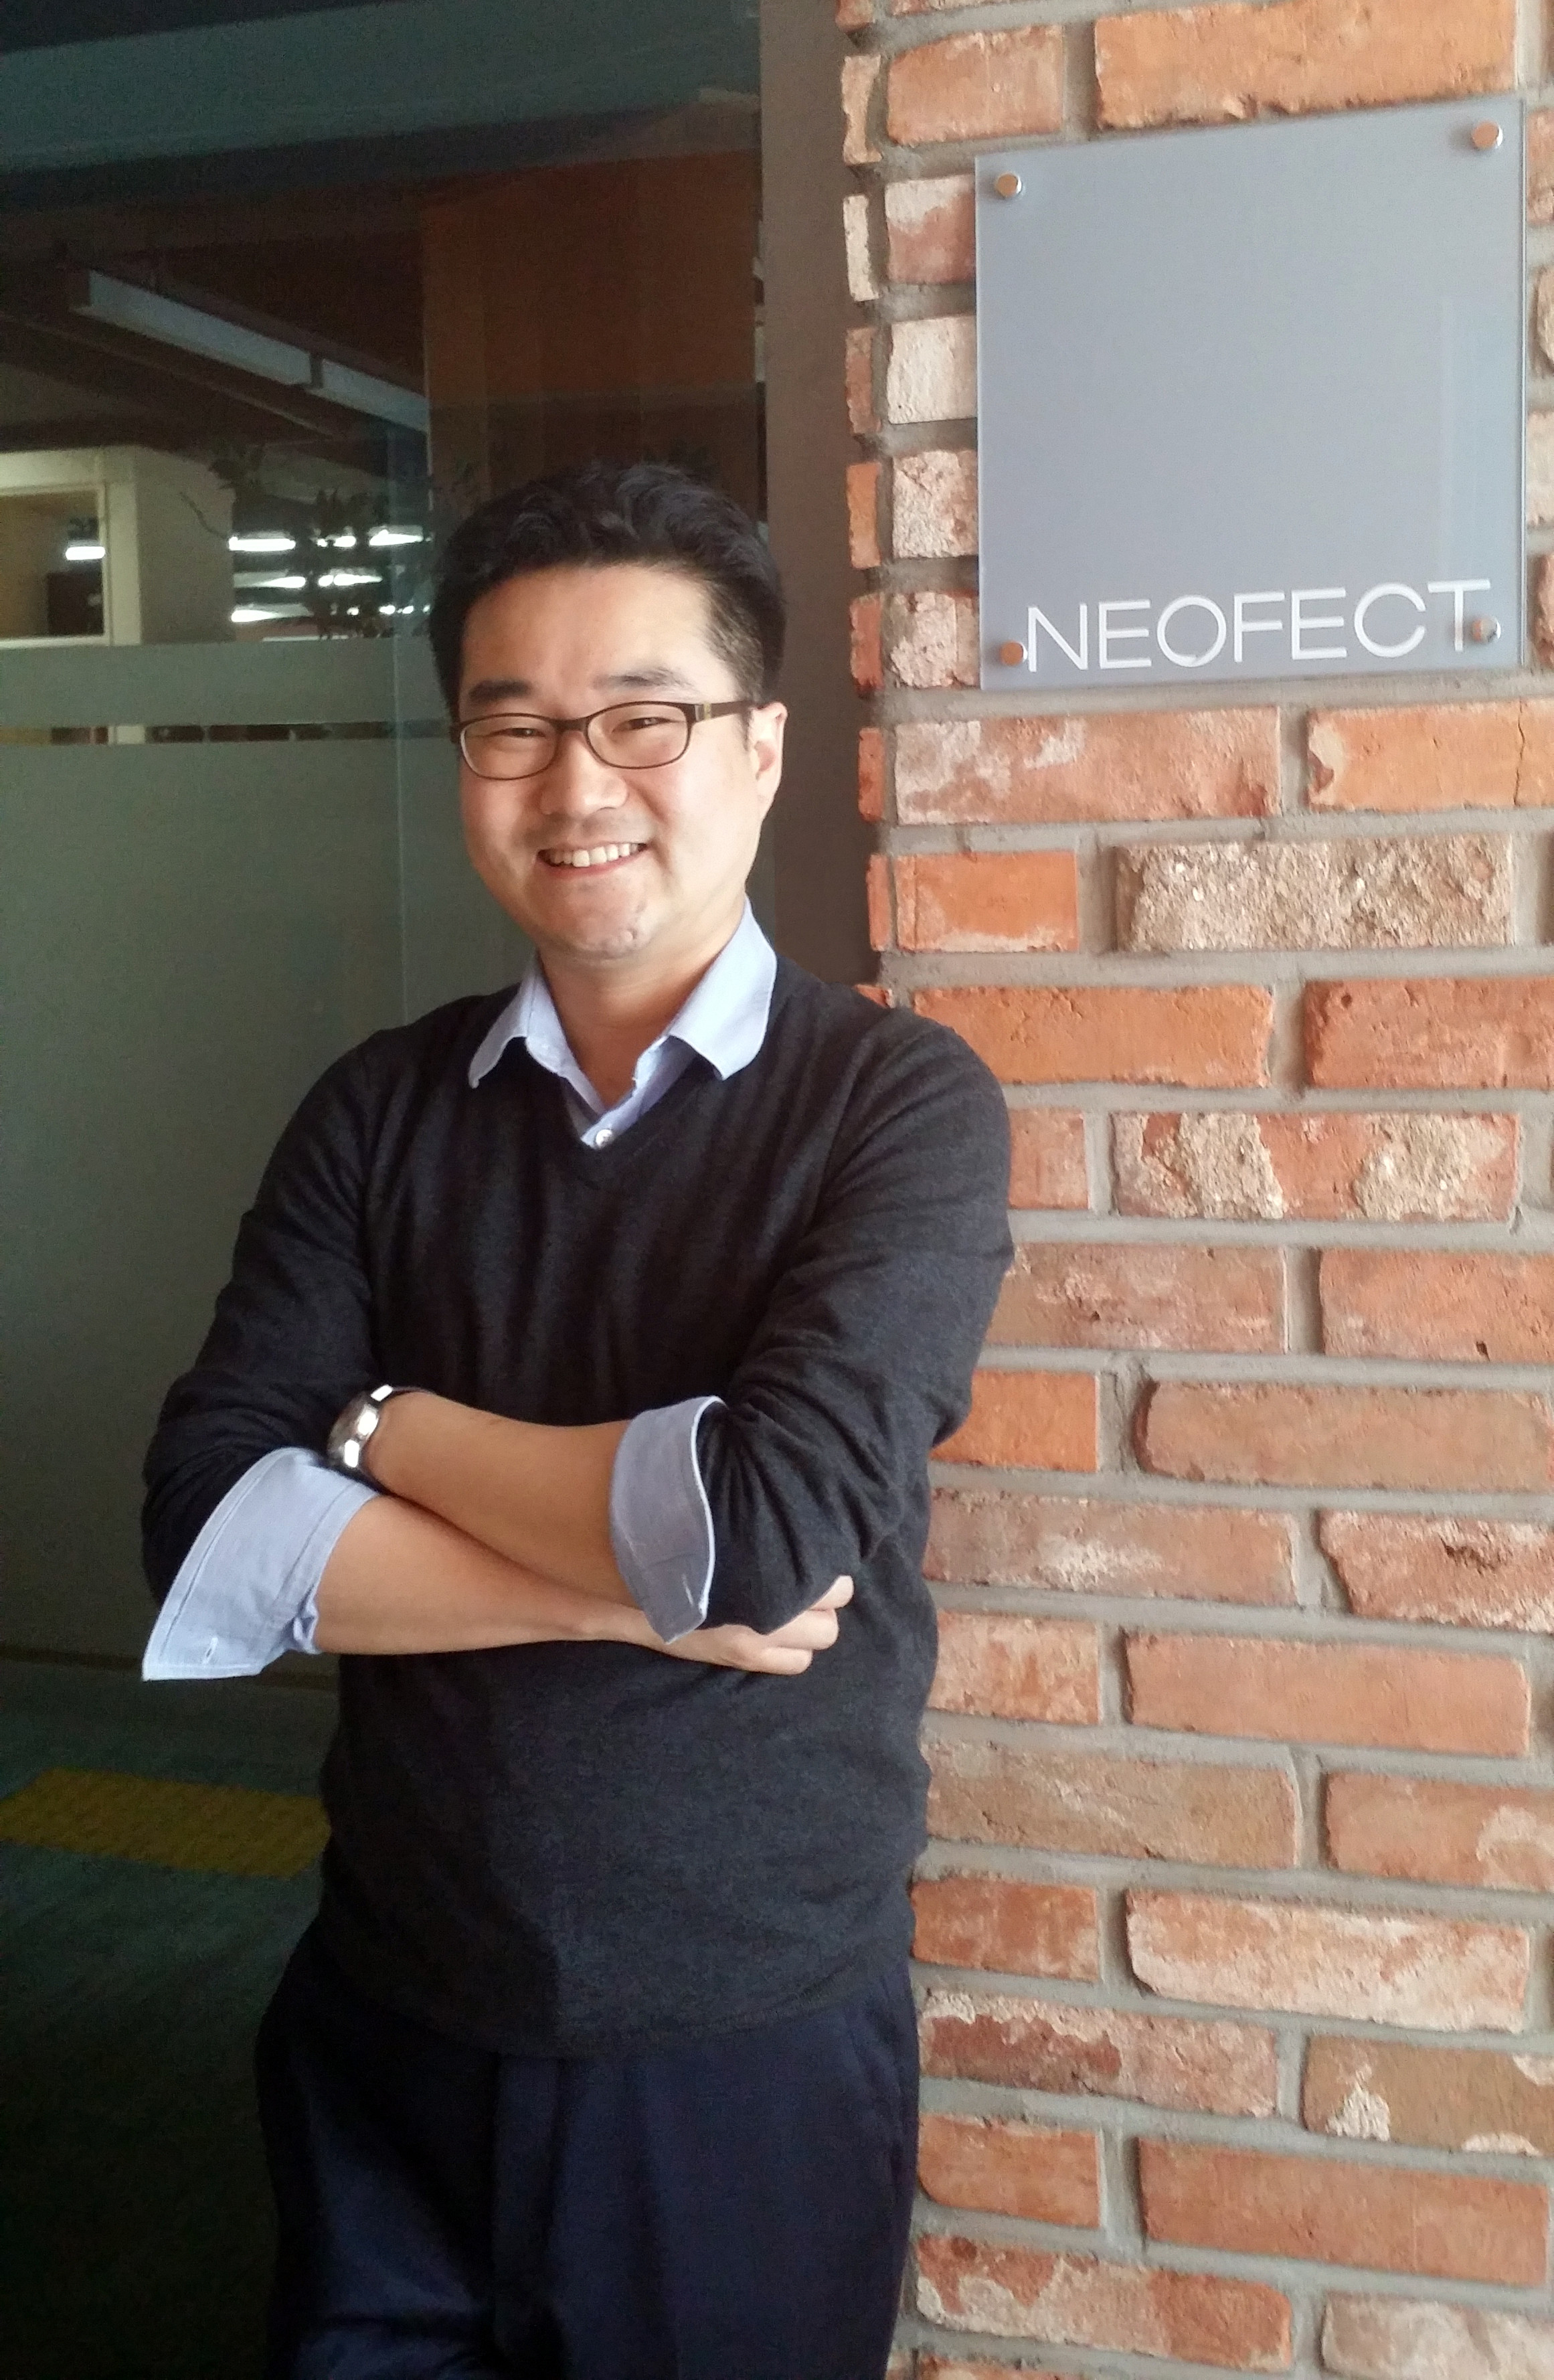 South Korean inventor Hoyoung Ban's first venture failed, but armed with his Darden education, he is making progress with his new product.